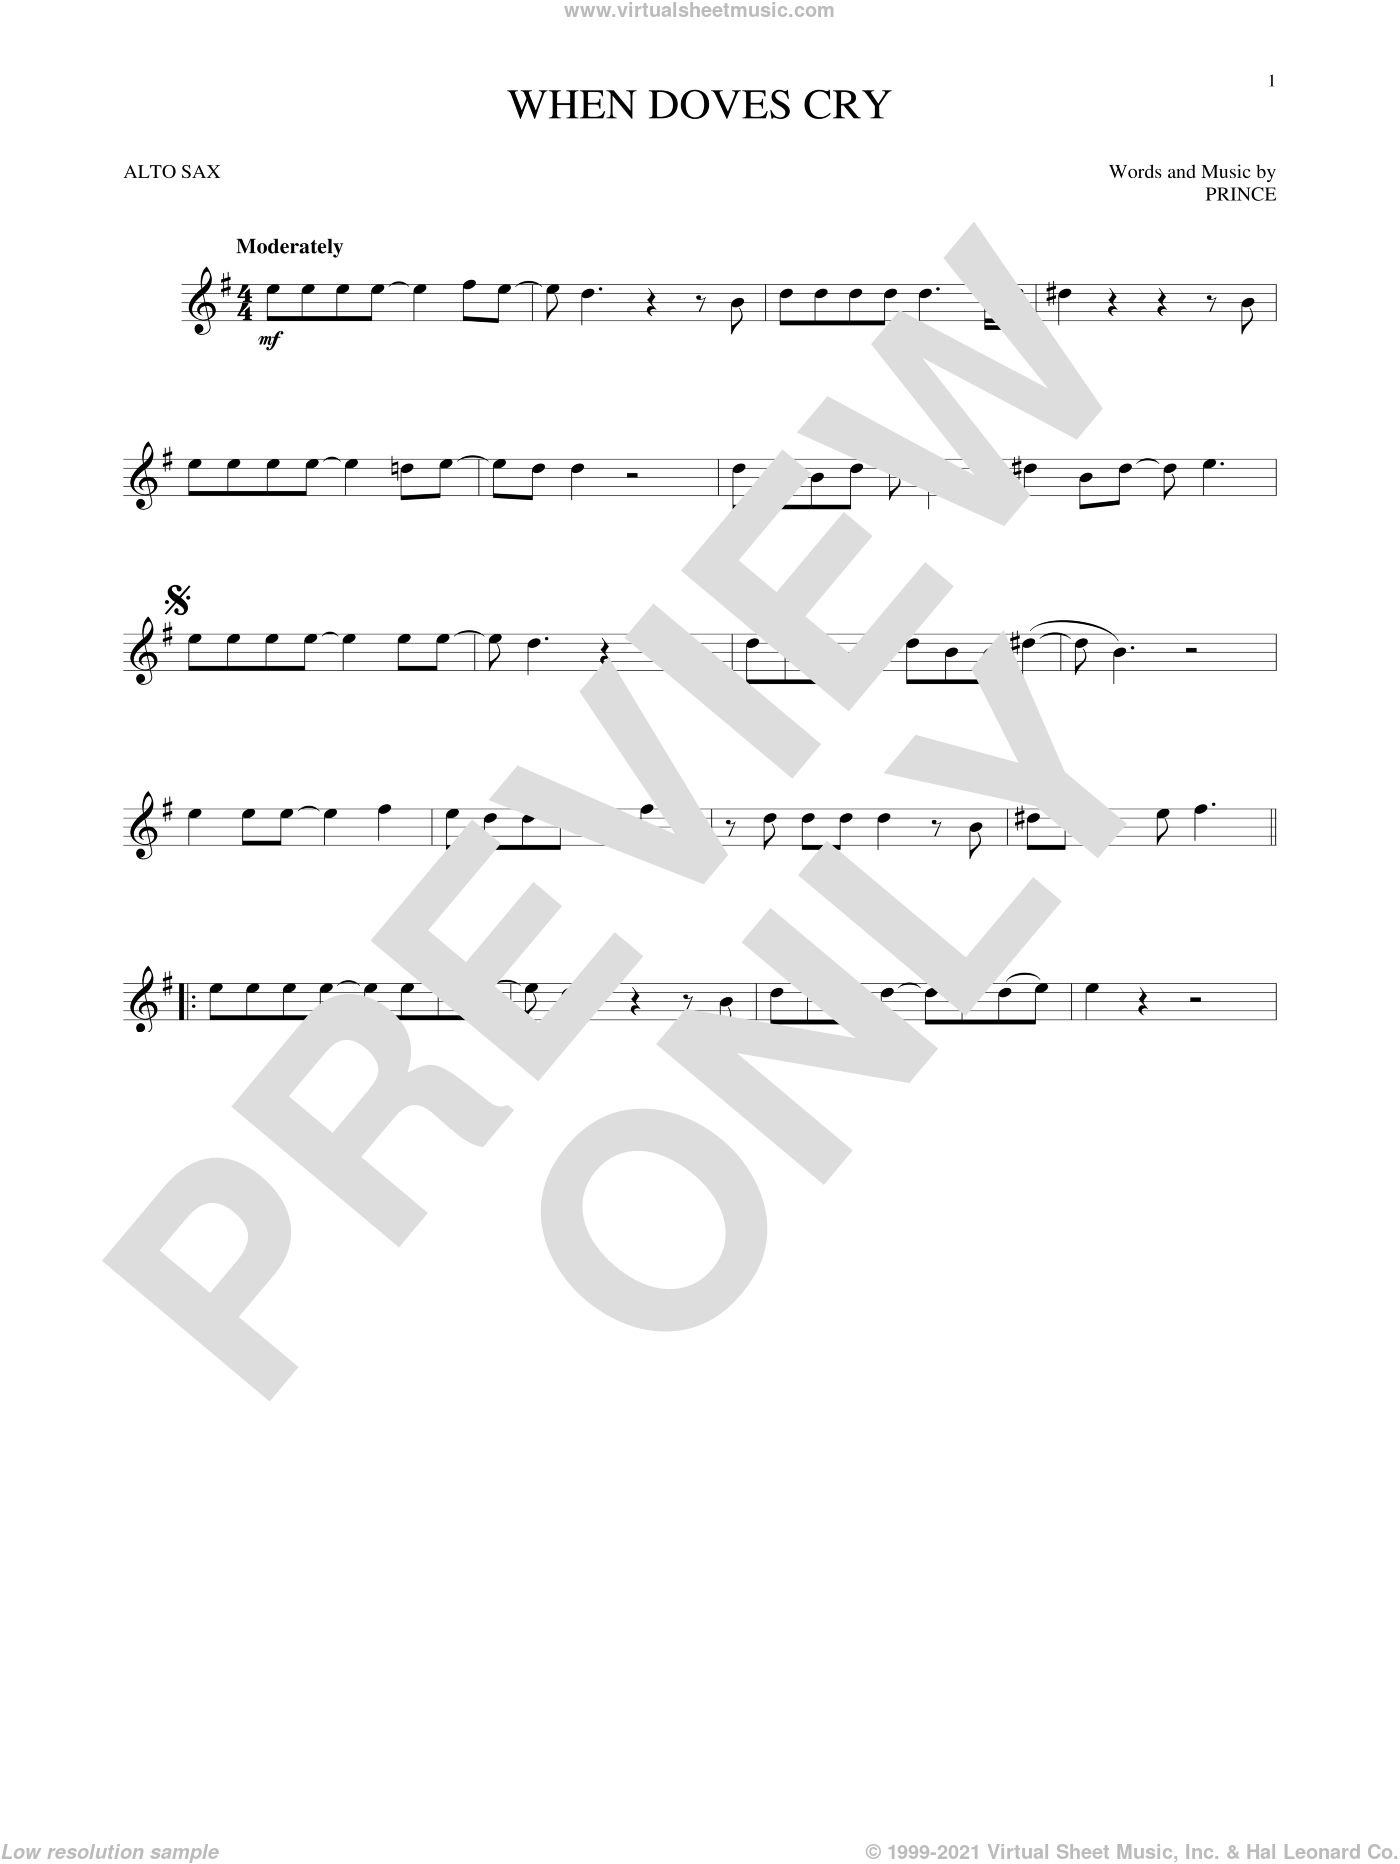 When Doves Cry sheet music for alto saxophone solo by Prince, intermediate skill level